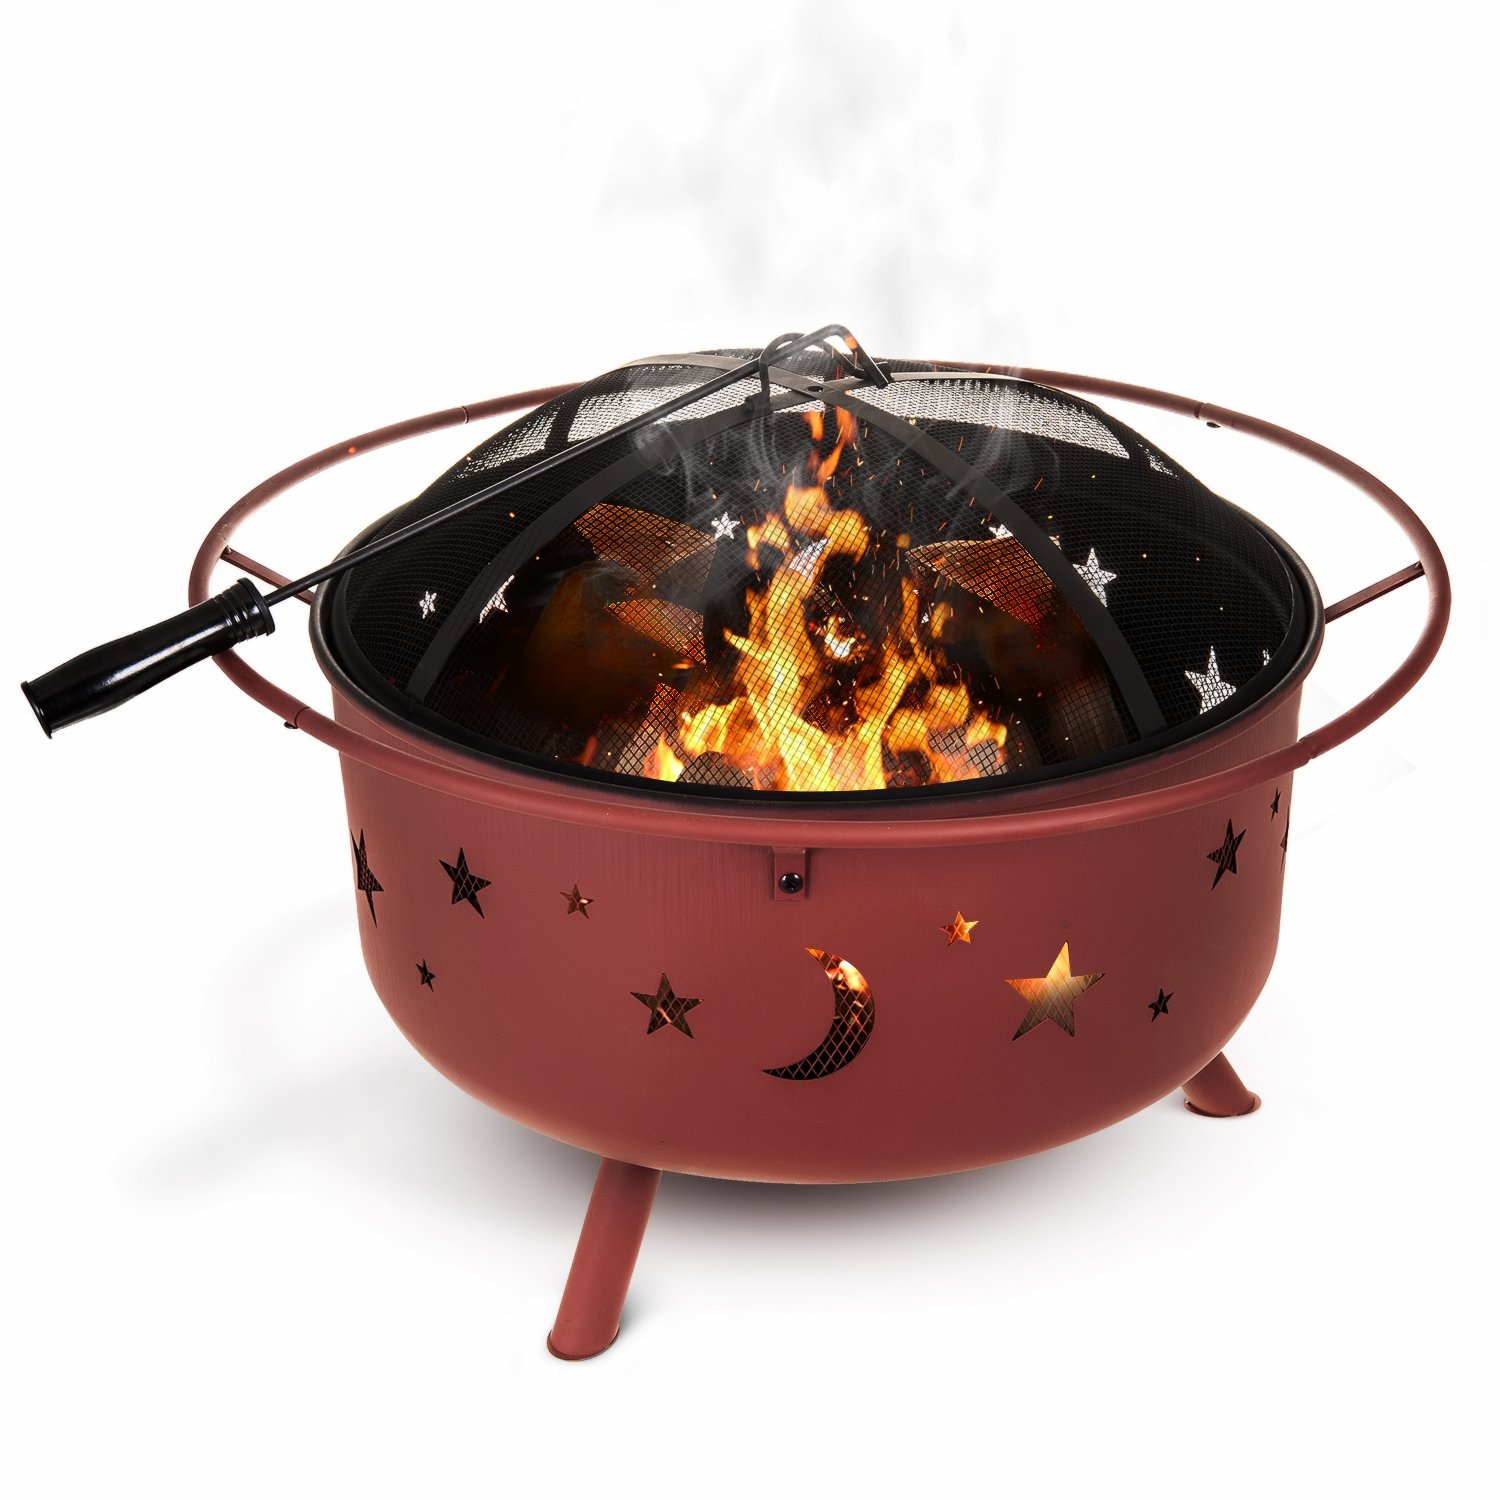 Fineway. Fire Pit/Brazier Solid Fuel BBQ Moon & Stars Cut-Out for Garden/Veranda/Camping 74cm x 59cm with waterproof cover